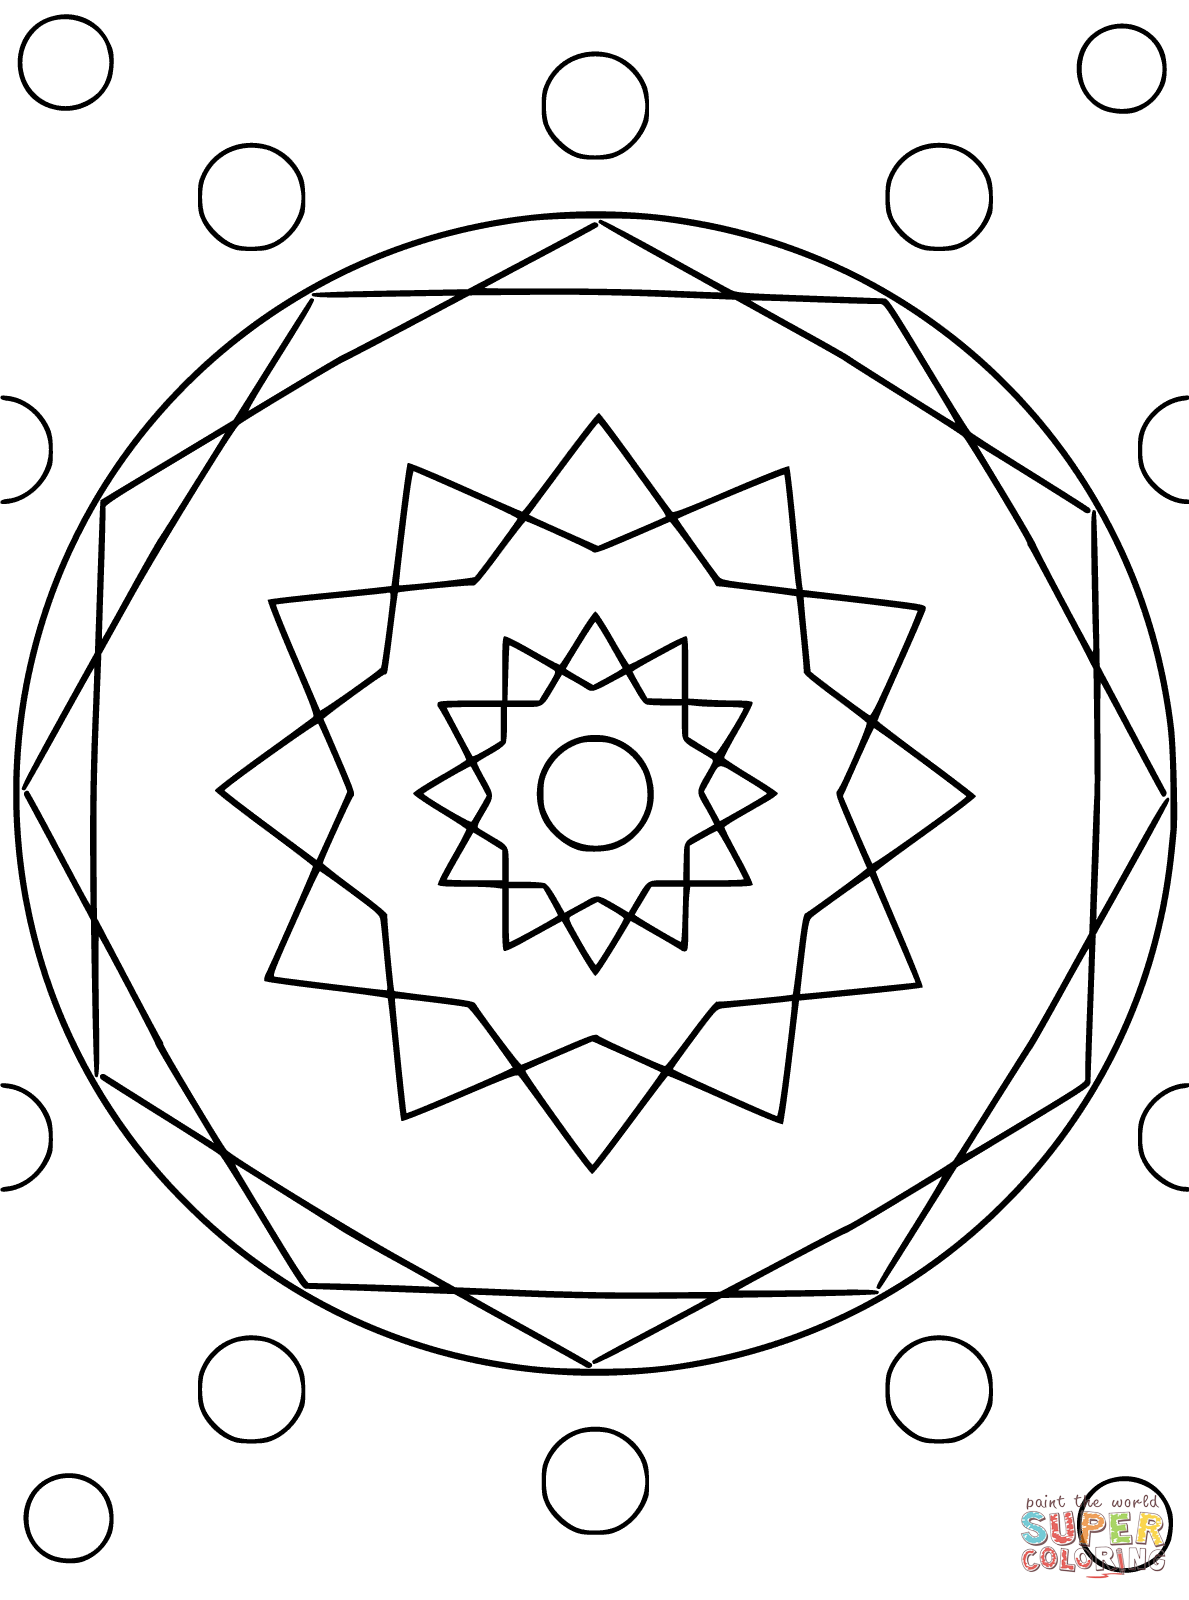 circle coloring page free coloring pages download xsibe triangle